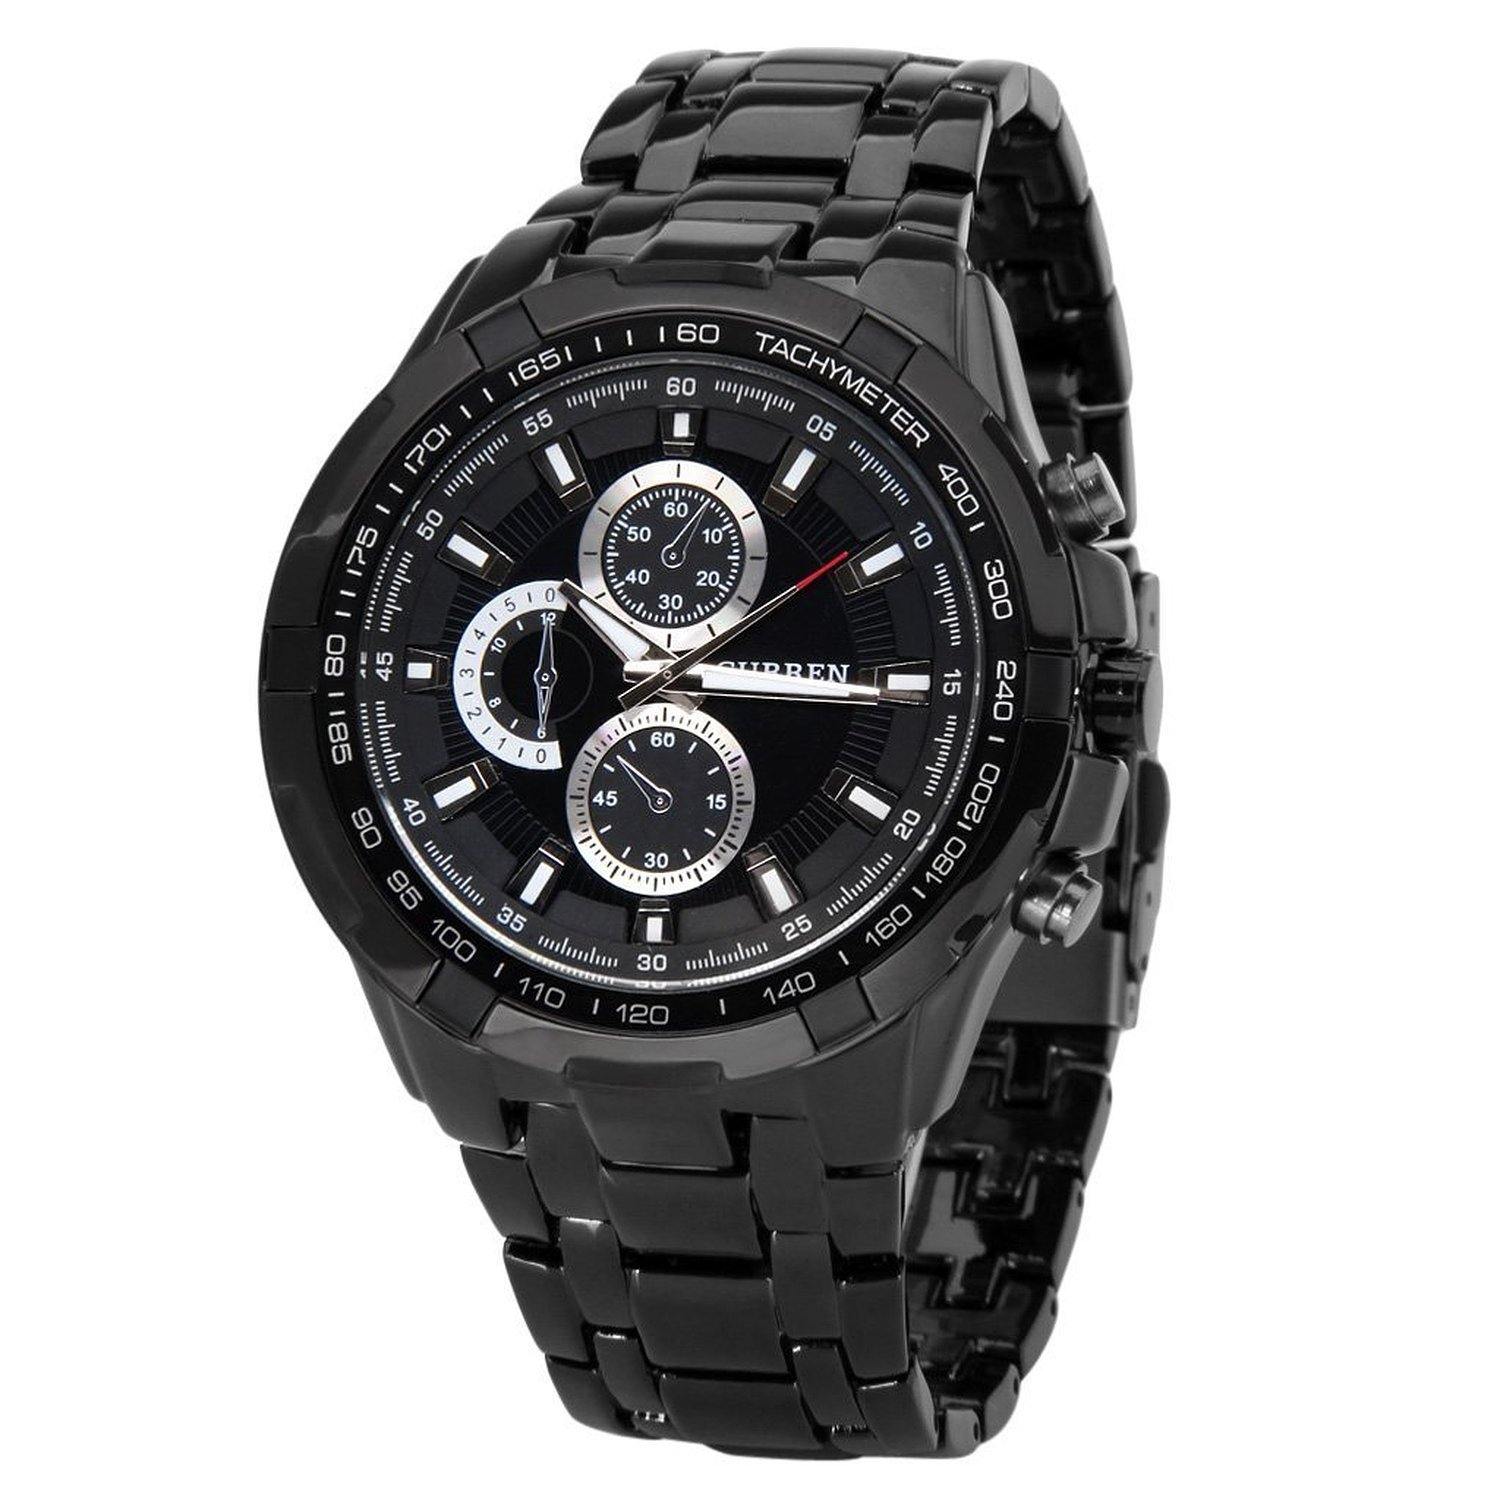 Amazon.com: Fanmis Black Stainless Steel Luxury Sport Watches Mens Analog Quartz wrist Watch: Watches